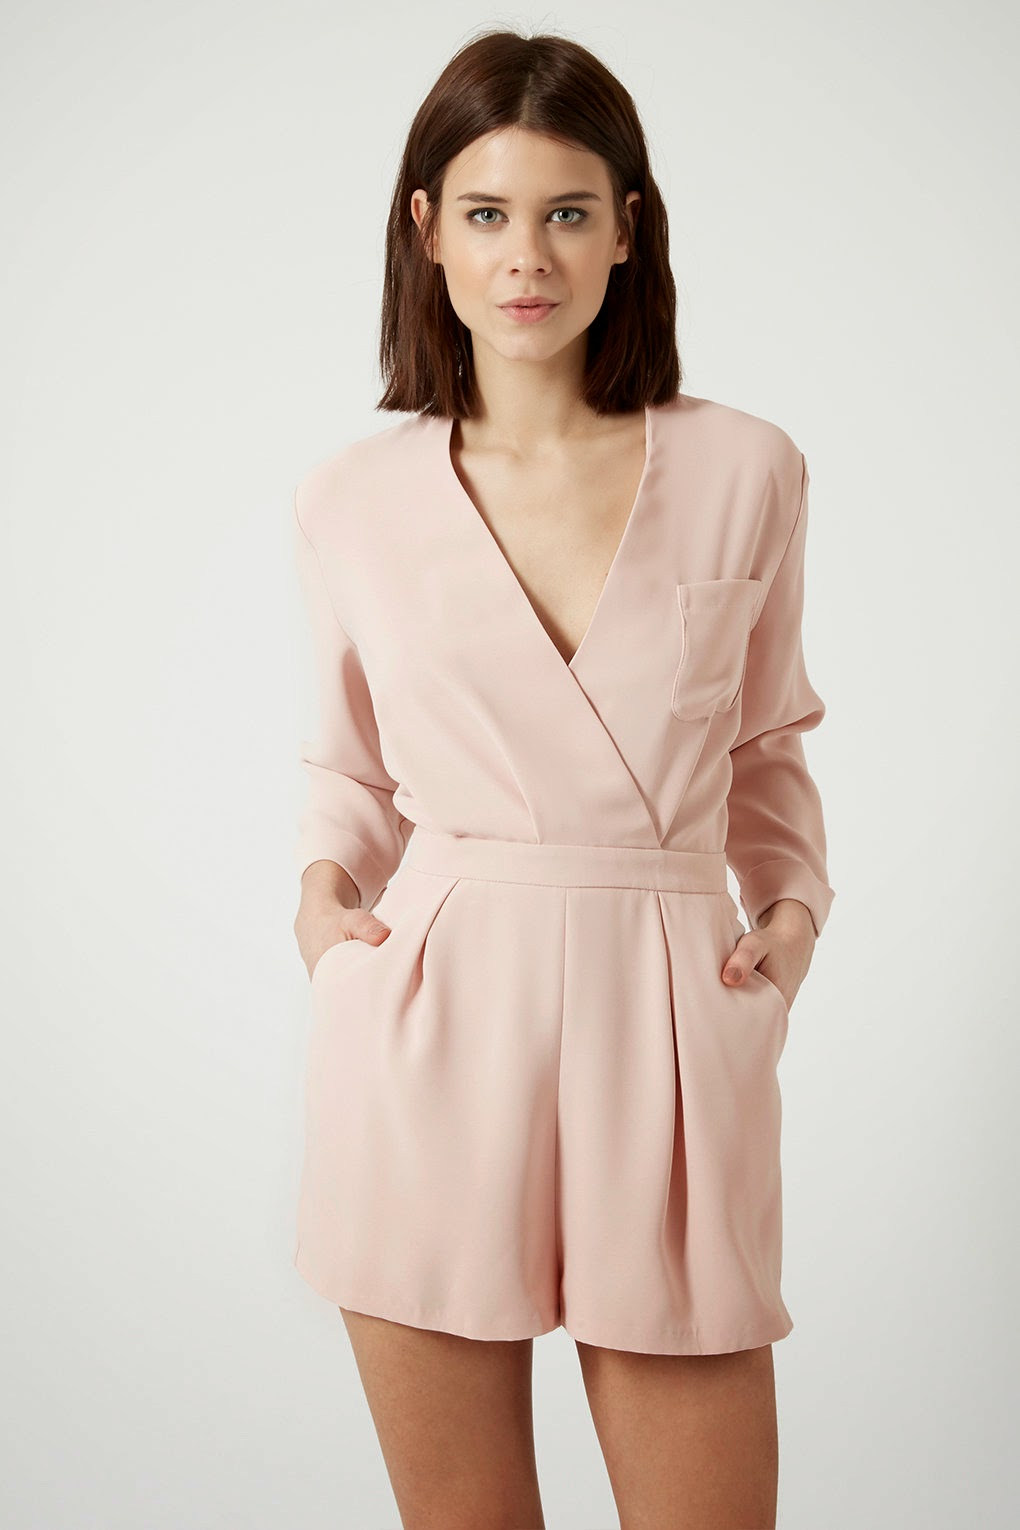 topshop pink playsuit, pastel pink playsuit, light pink playsuit, long sleeve playsuit,